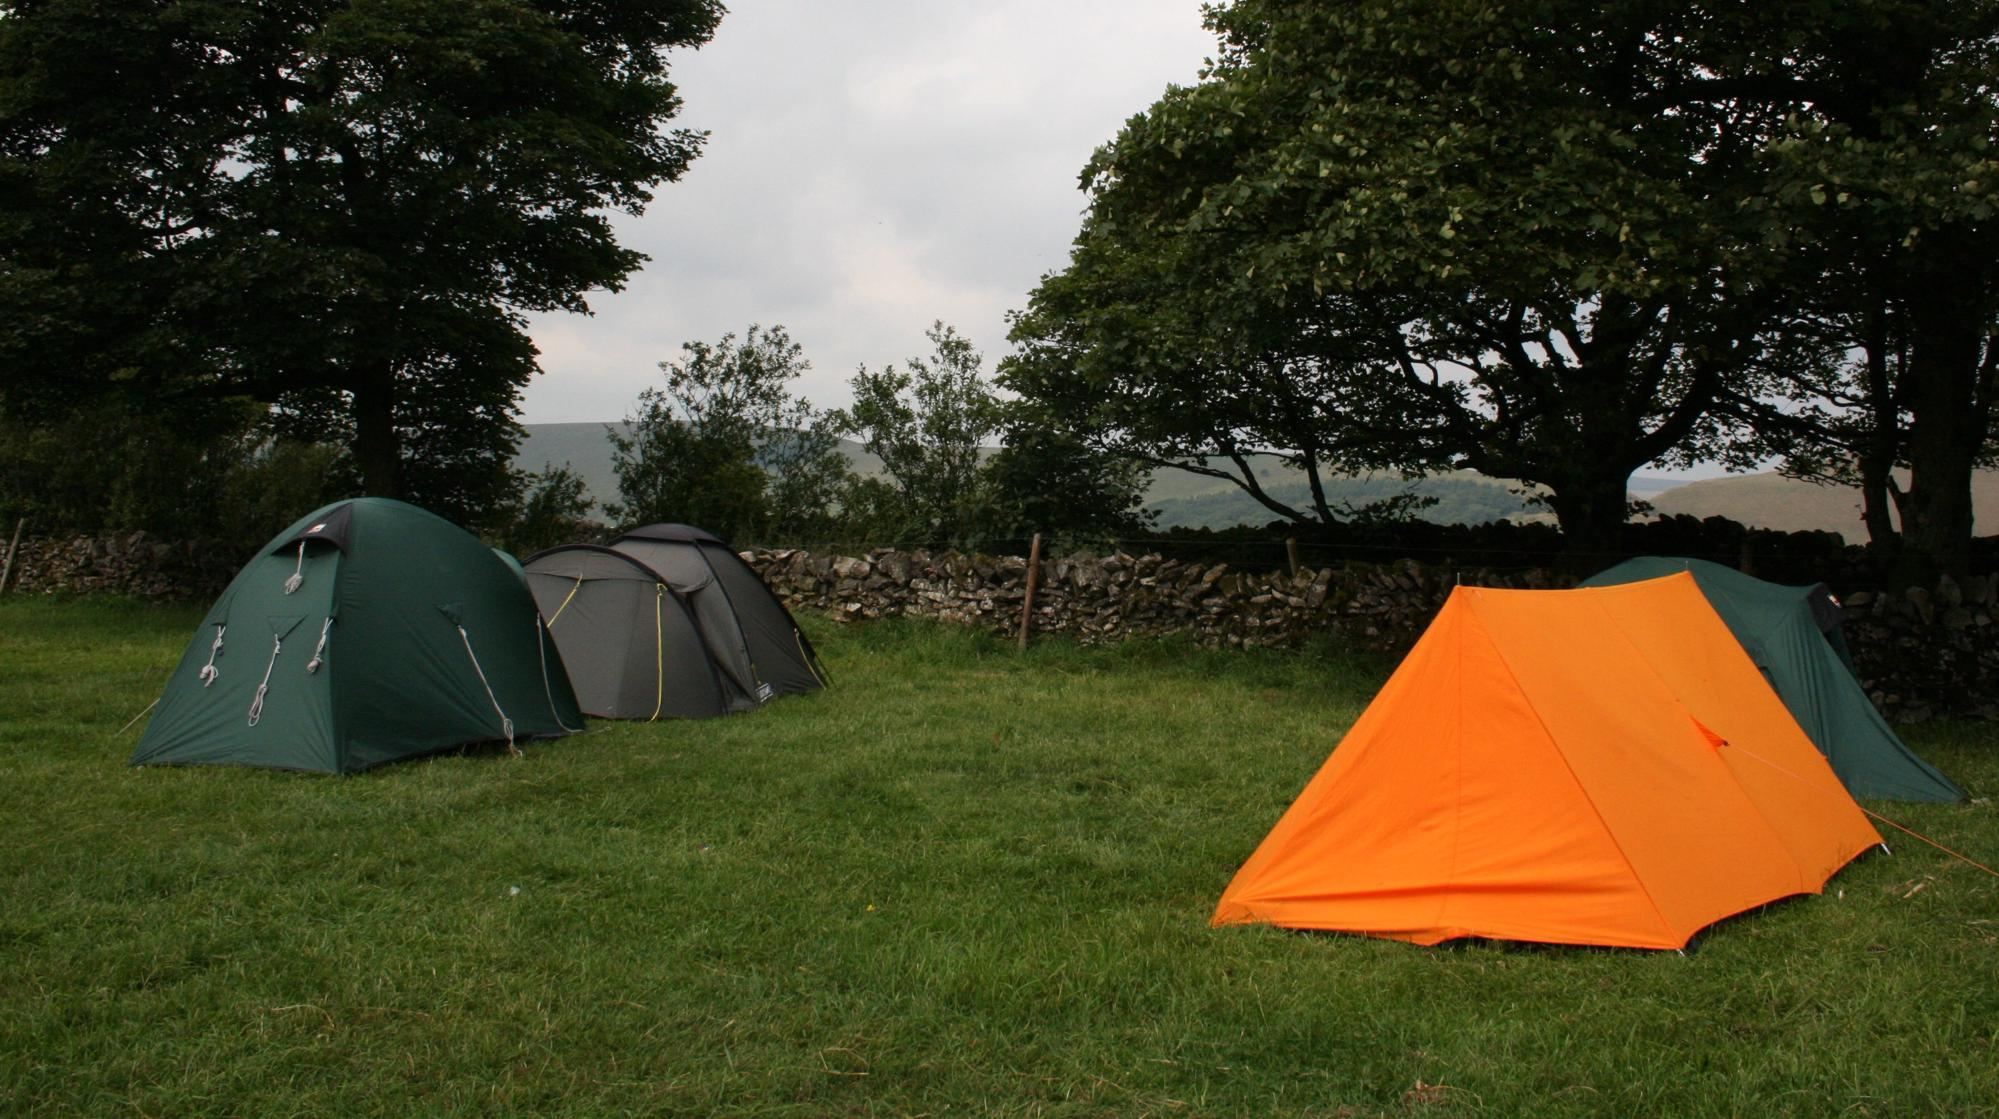 Edale Camping | Best campsites in Edale, Peak District